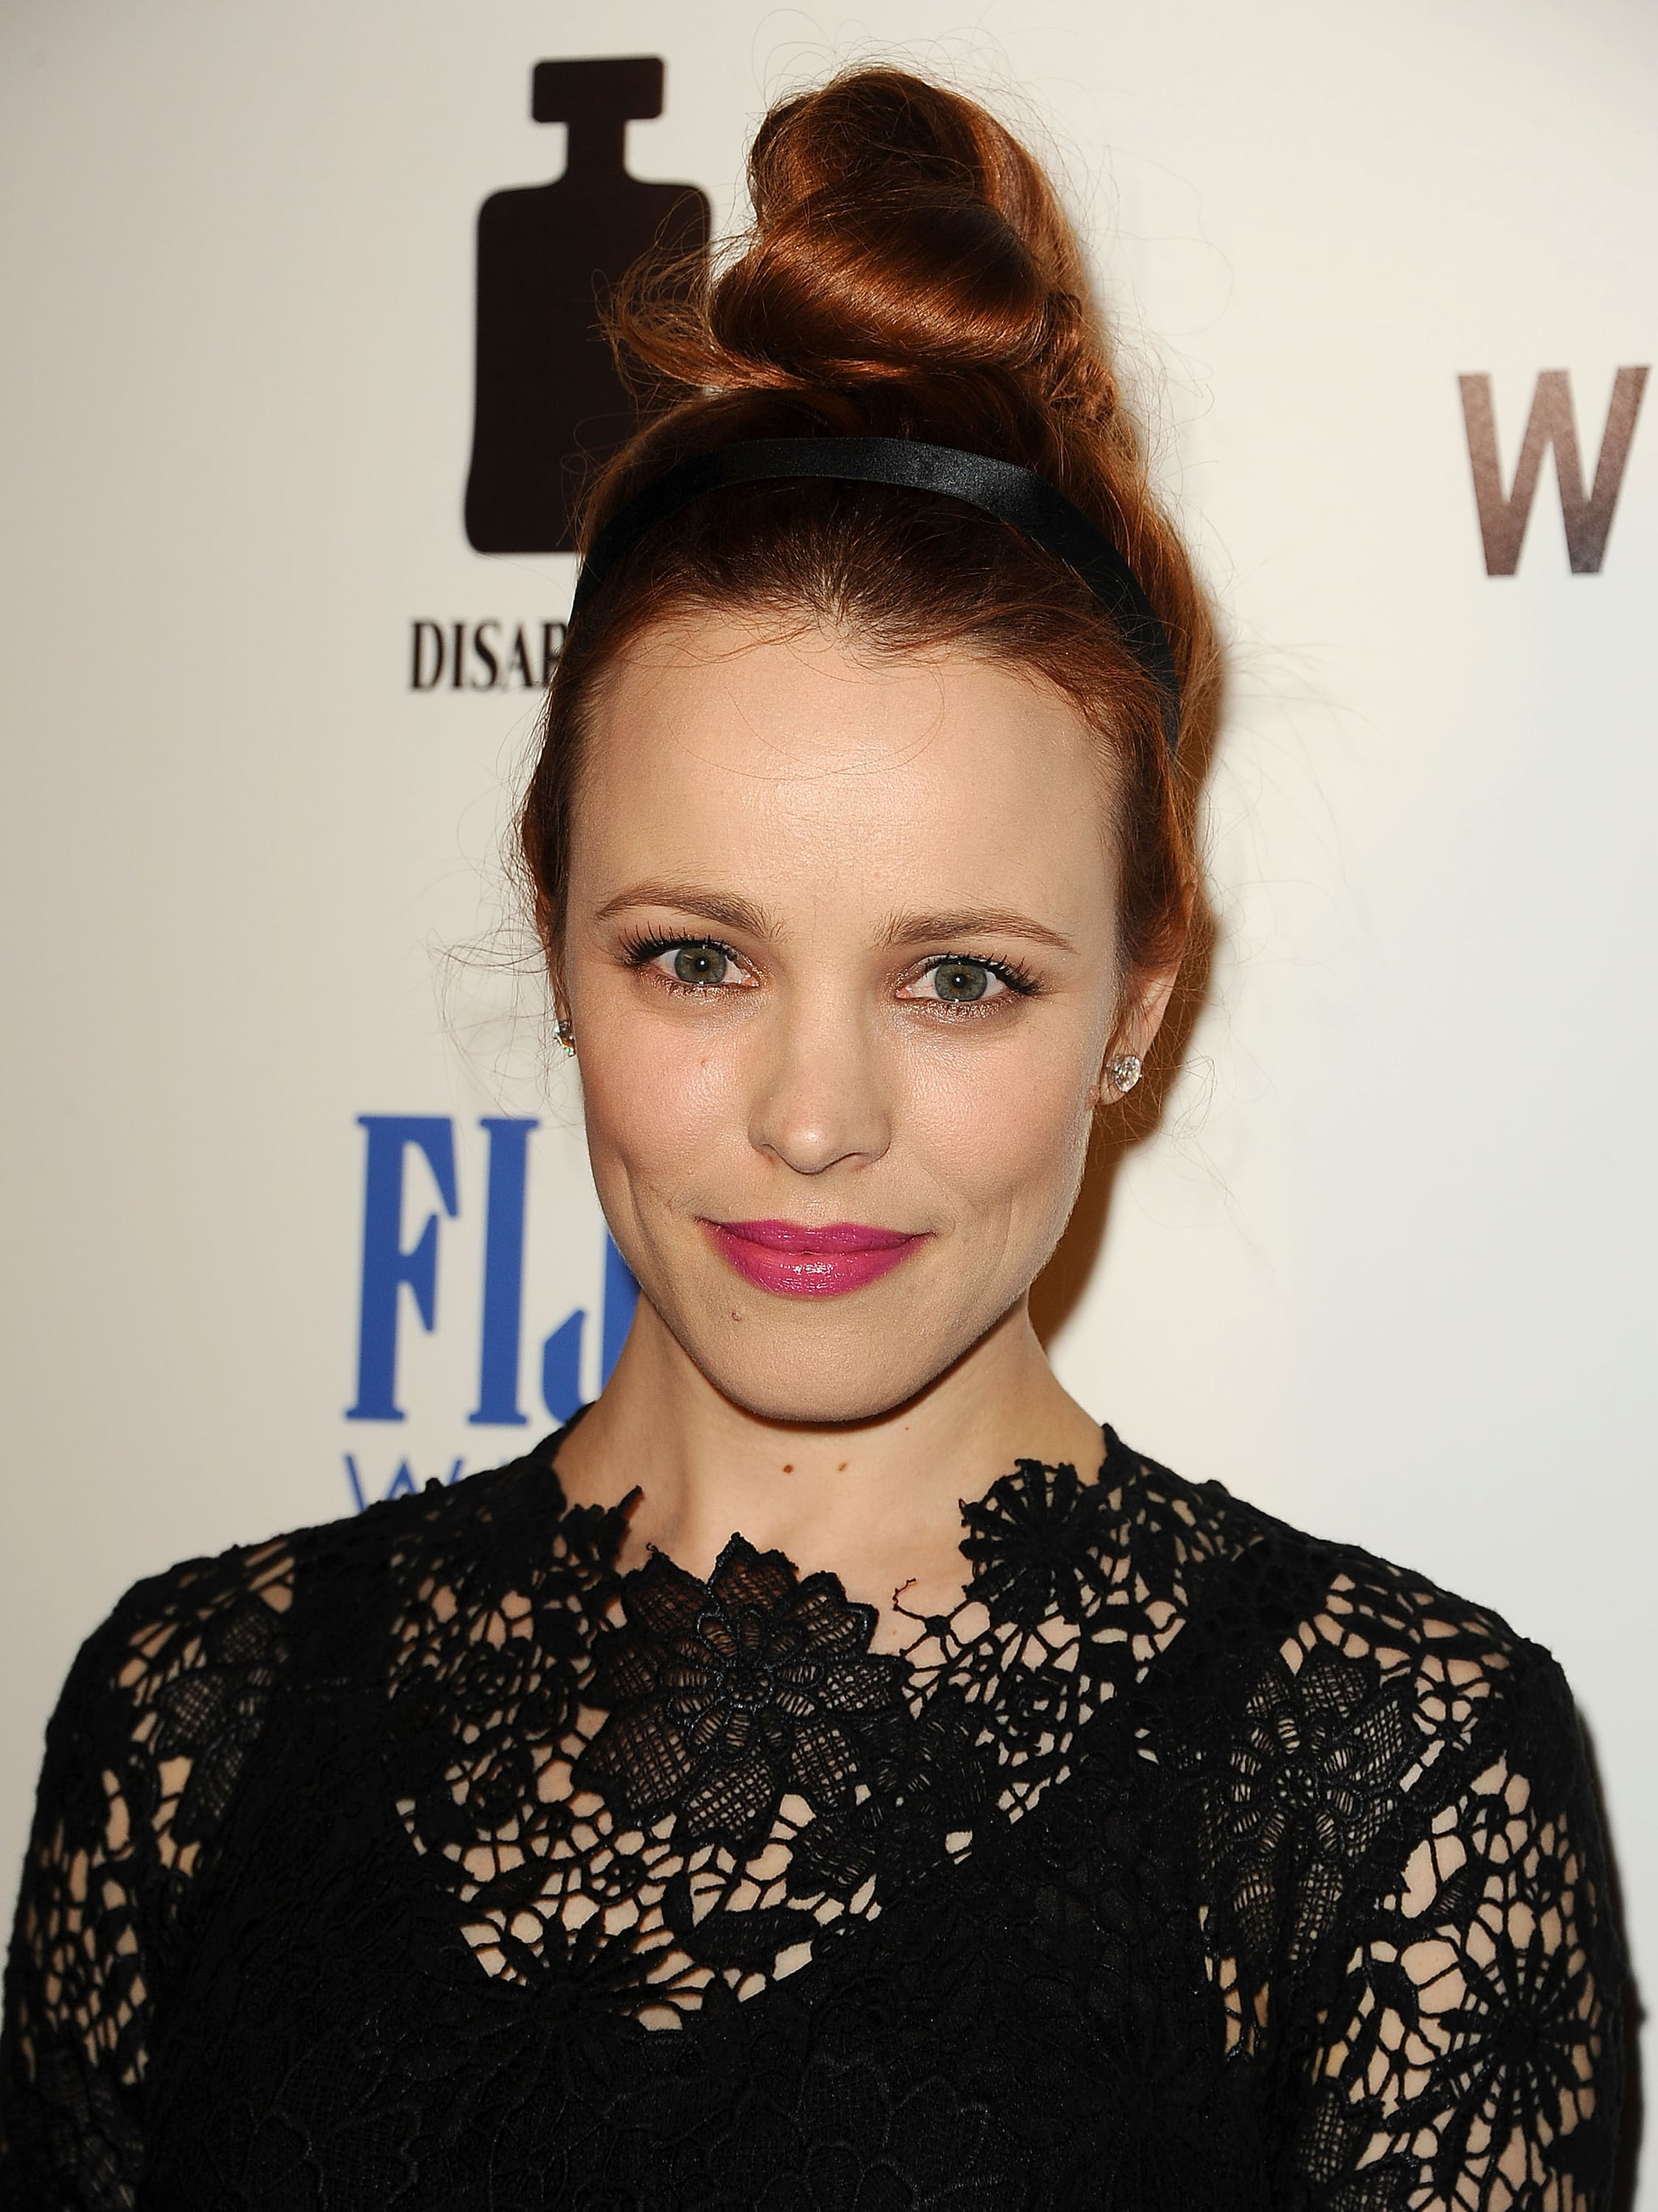 To achieve this impressive topknot, Rachel McAdams had the help of stylist Mark Townsend.